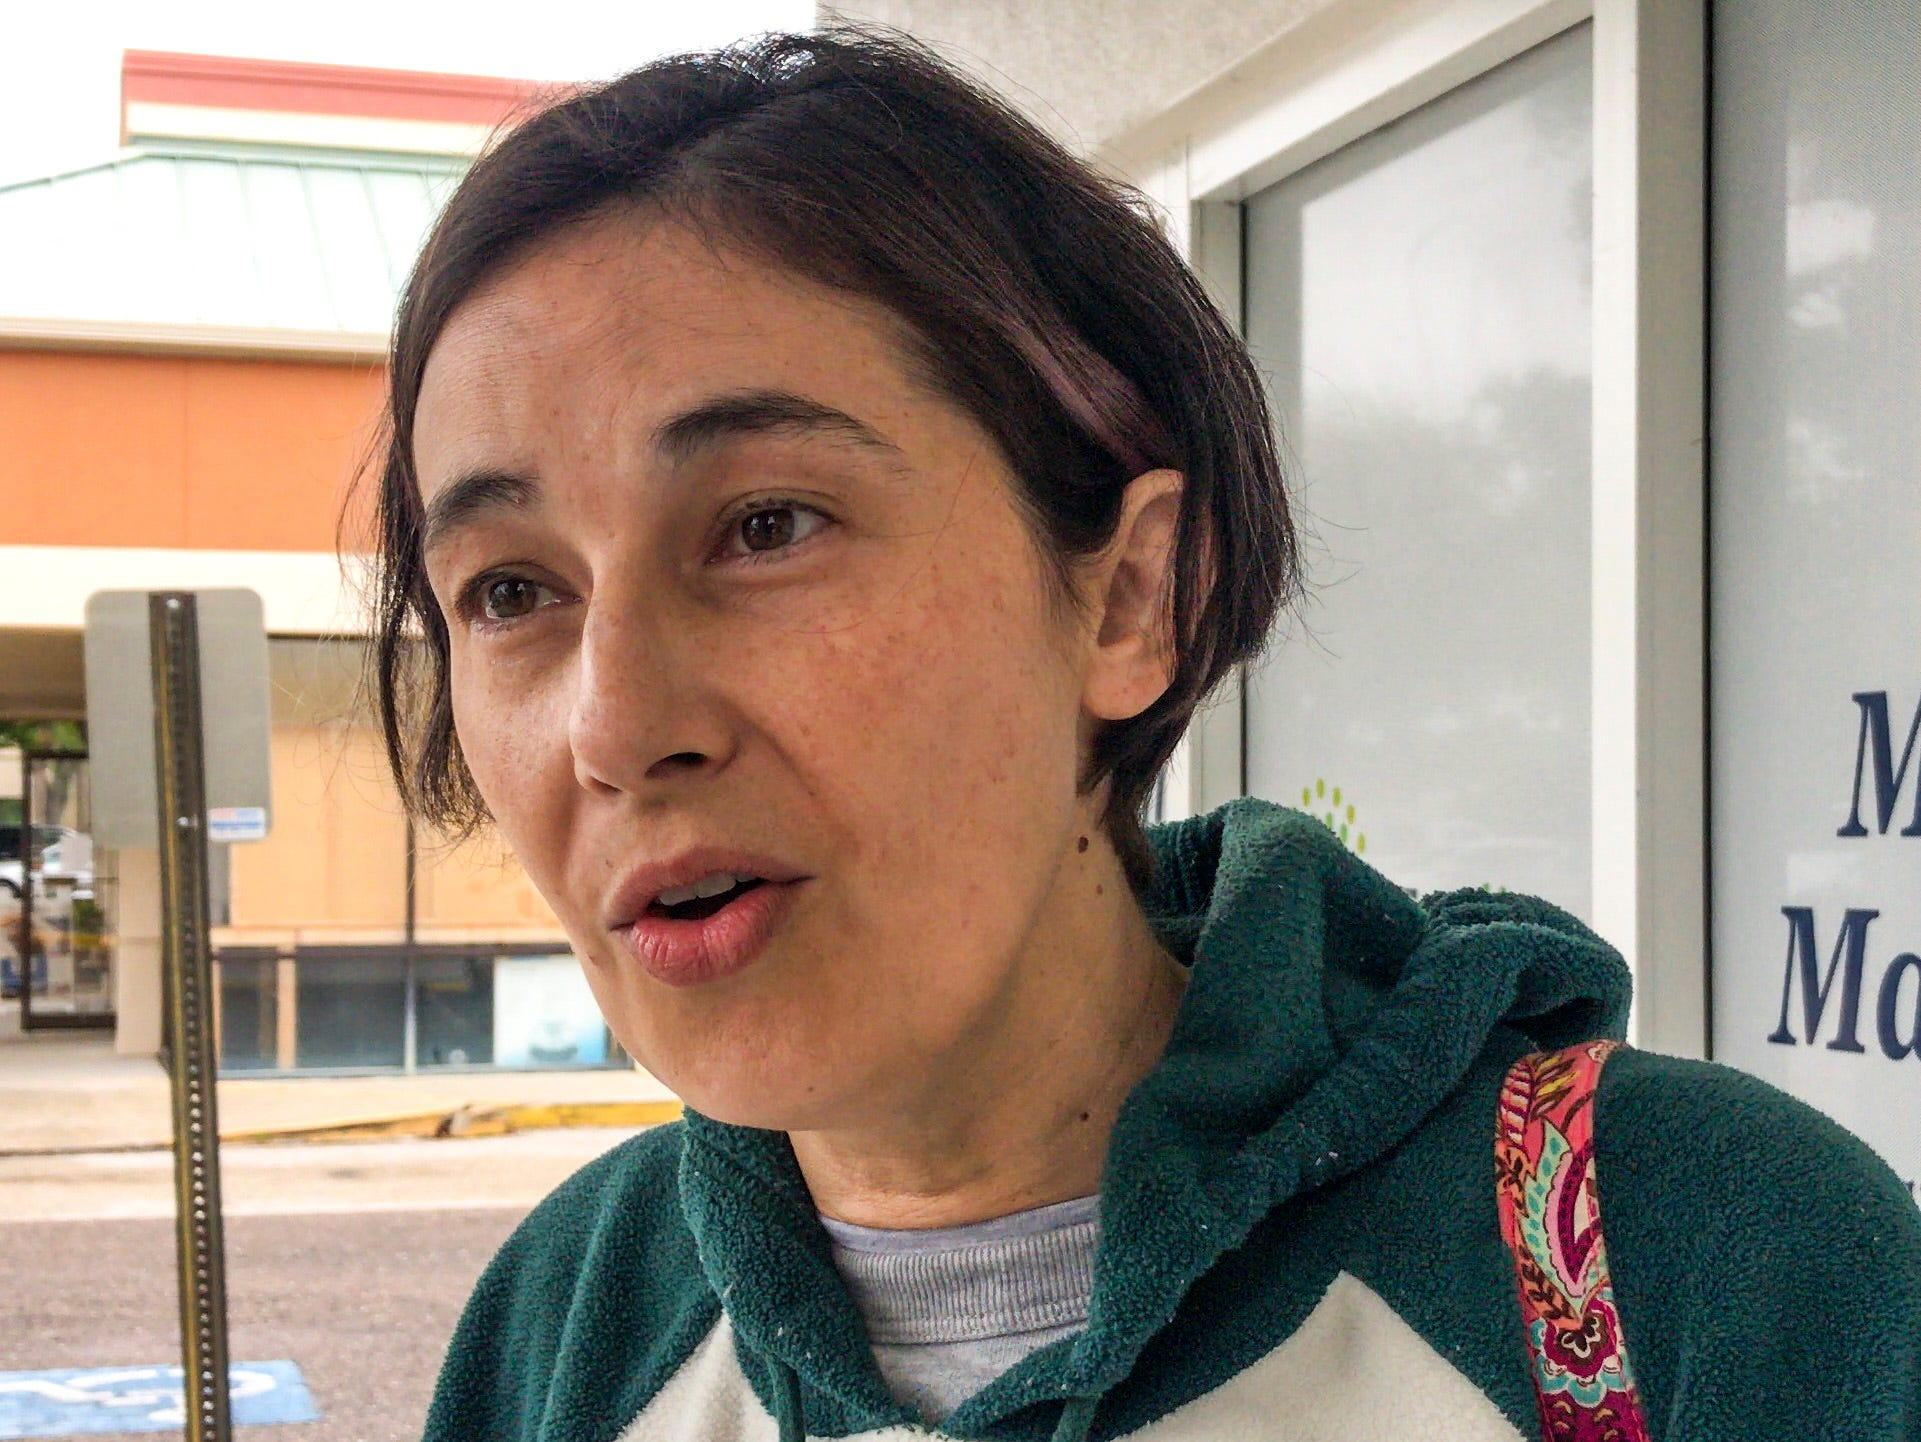 Annie McDermott of Venice looked to buy the cannabis flower at Trulieve in Venice on March 19, 2019, but the state never gave the OK.